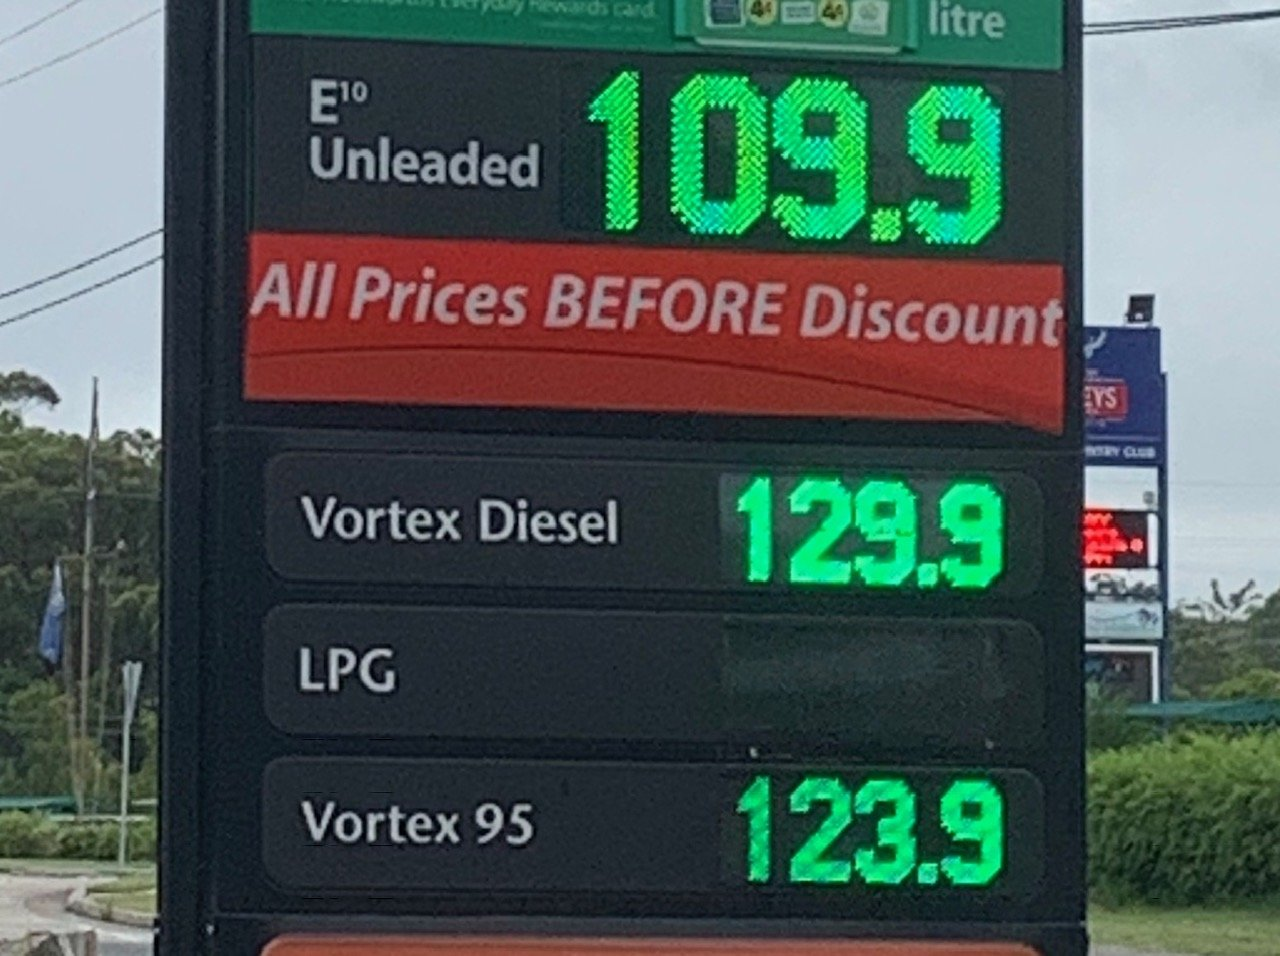 It's great to see a new retailer providing fuel price competition in Morisset where fuel is currently about 30 cents per litre cheaper than at Toronto.